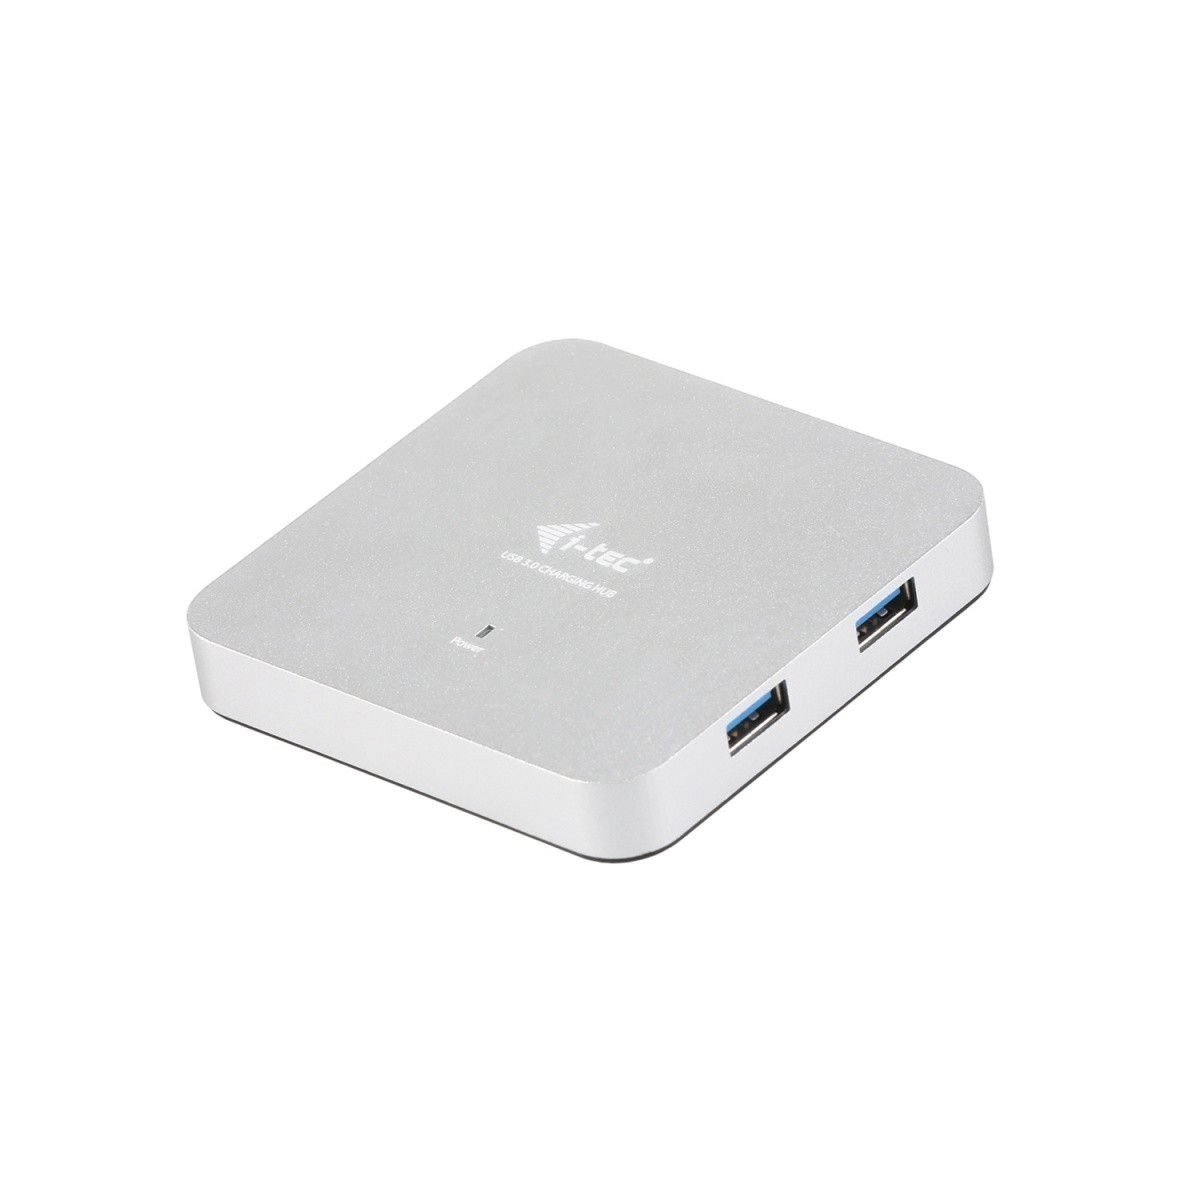 iTec i-tec USB 3.0 Metal Charging HUB 4 Port